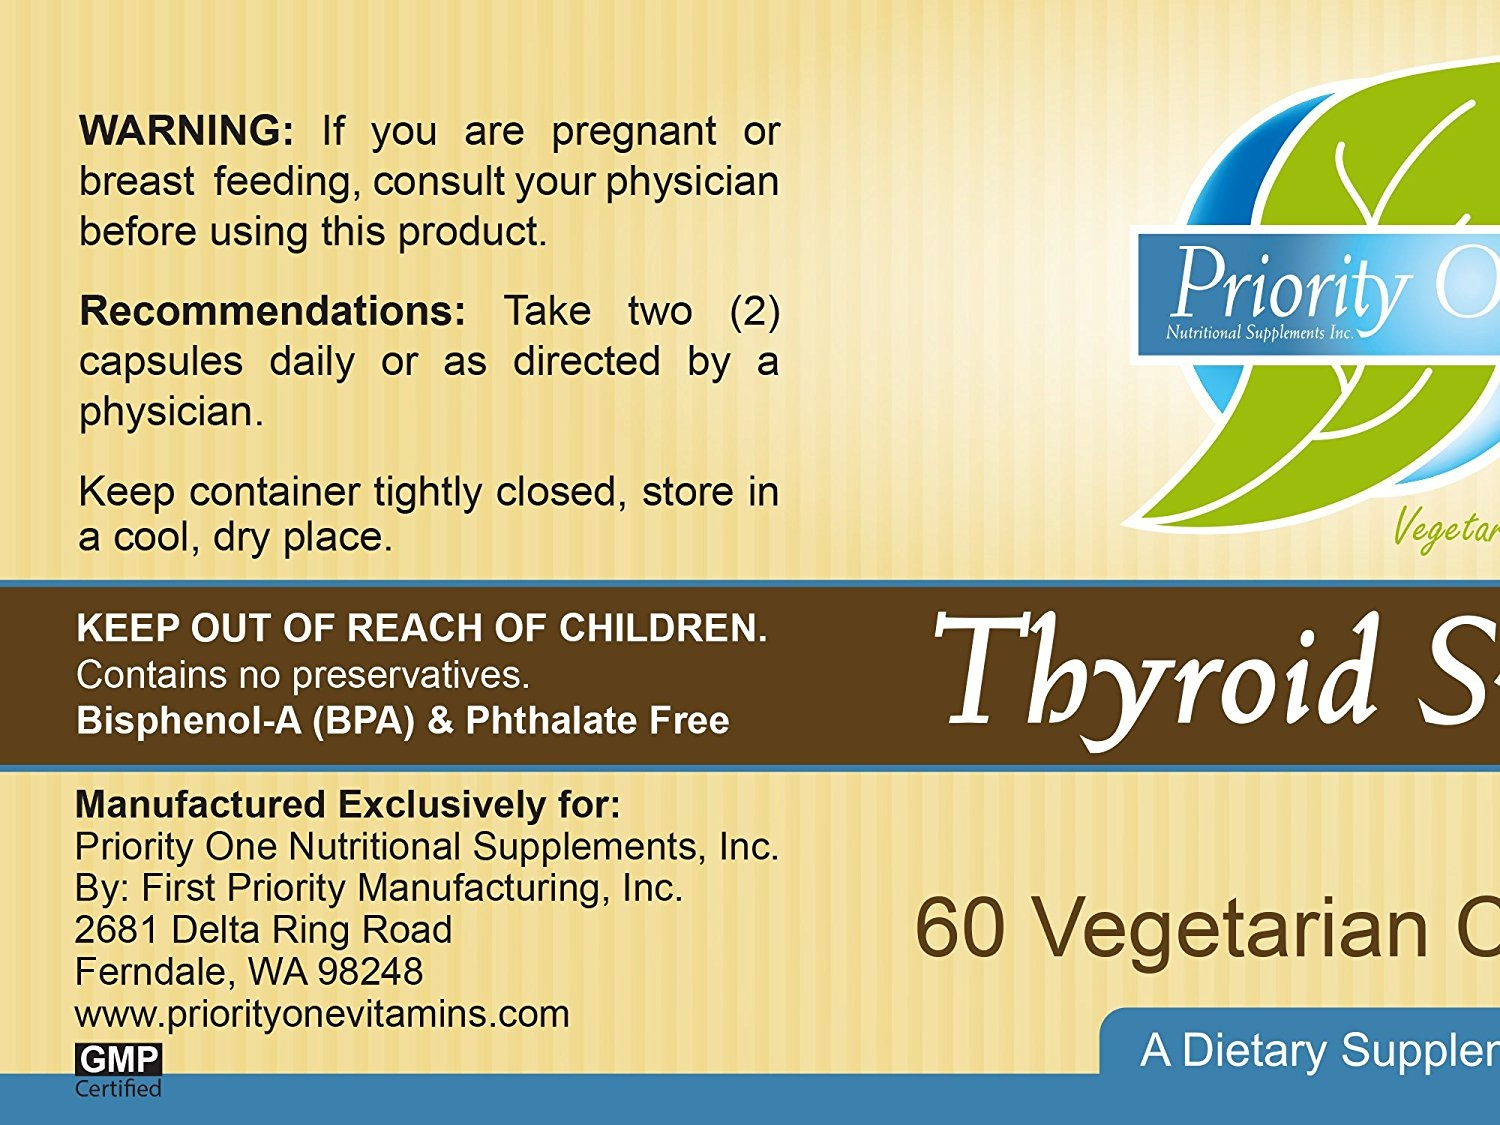 Priority One Vitamins Thyroid Support 60 Vegetarian Capsules - Vegetarian  support of the thyroid gland *